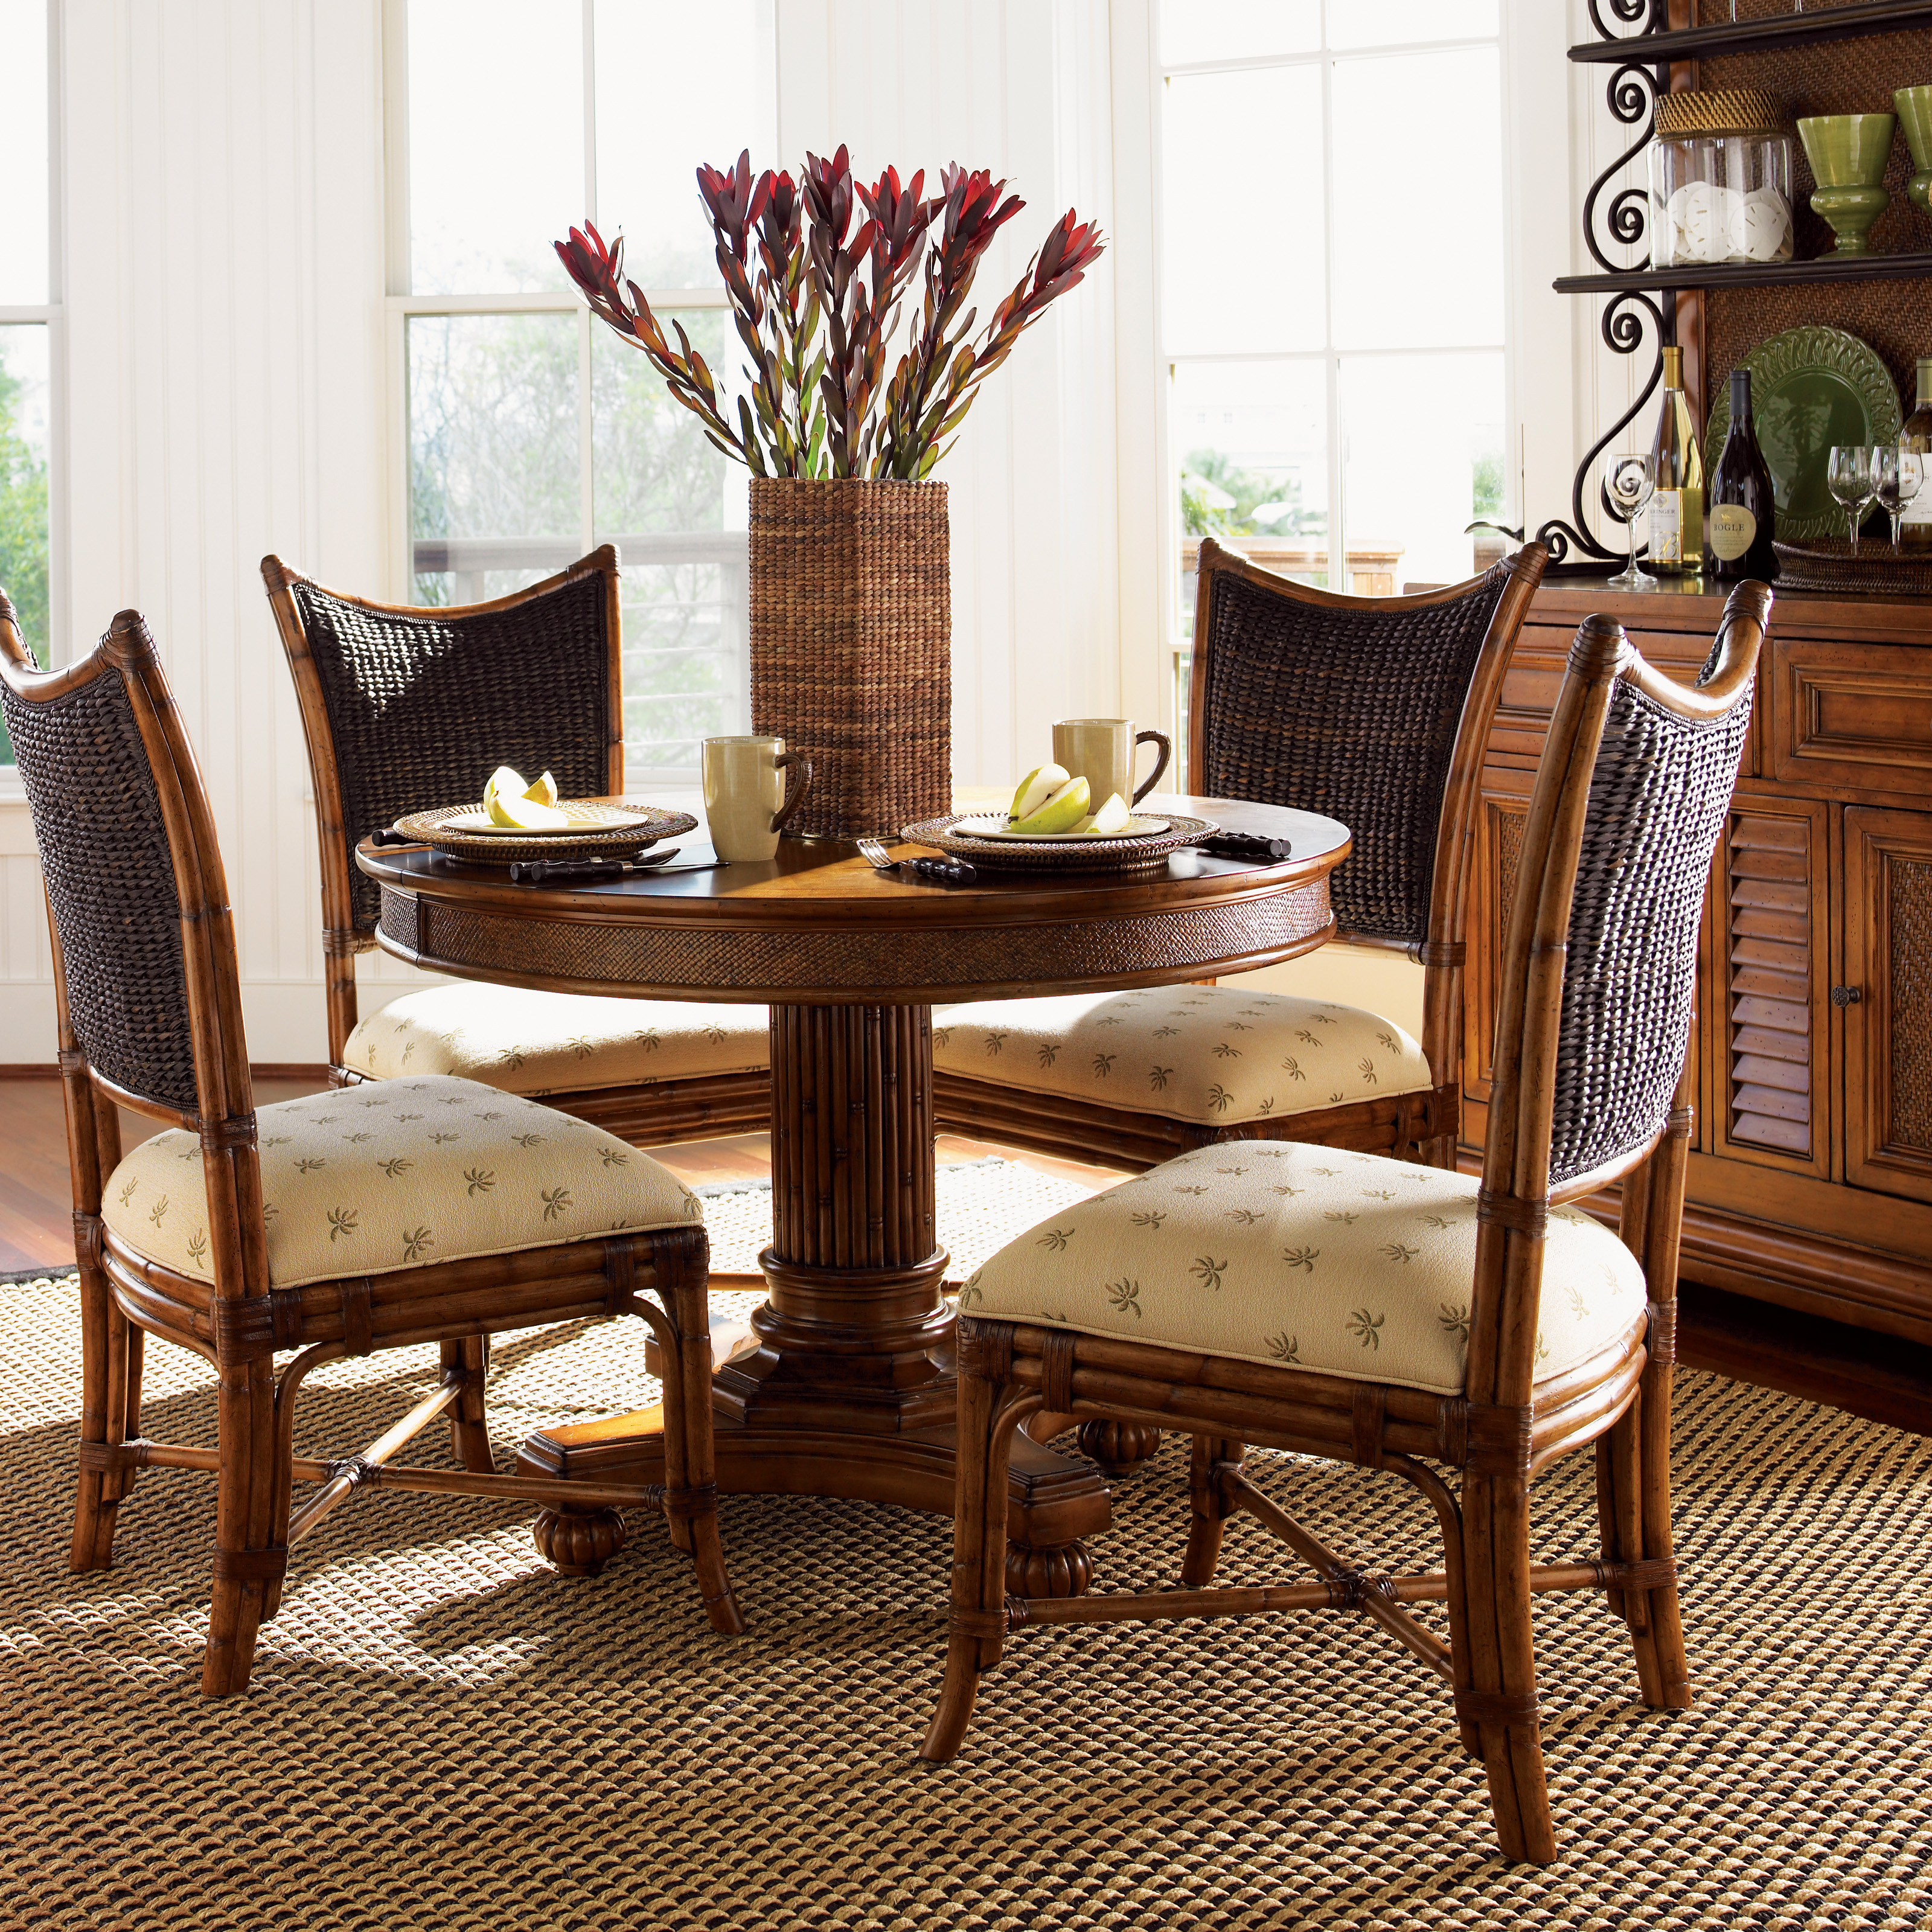 Captivating Tommy Bahama Island Estate 11 Piece Dining Set With 10 Mangrove Chairs |  Hayneedle Part 13